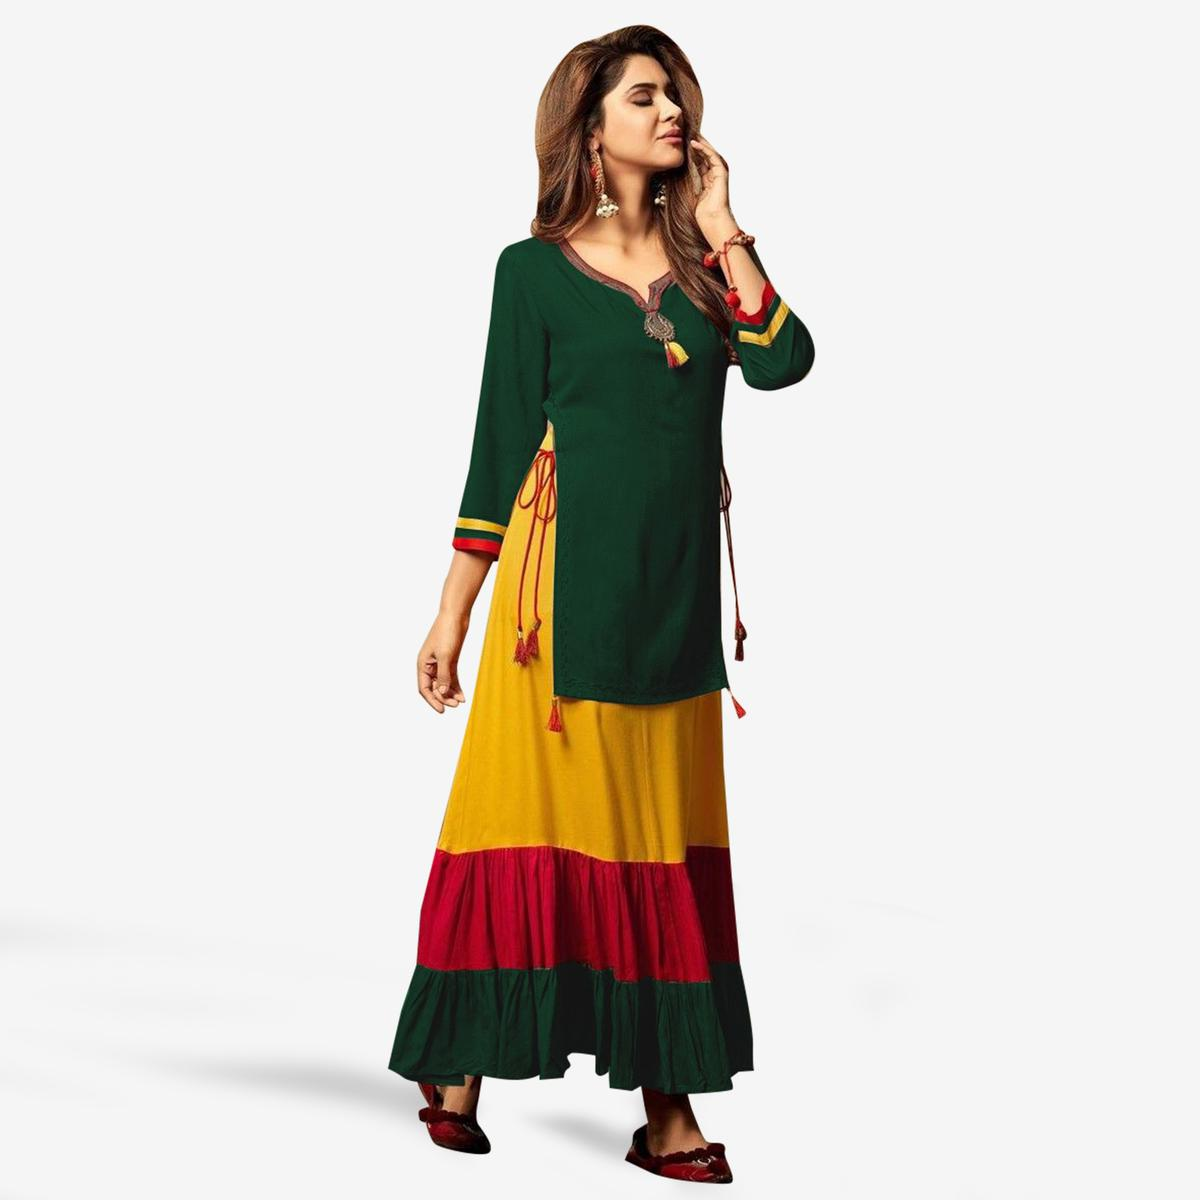 8a6286a3ee4 Buy Prominent Green Colored Party Wear Fancy Rayon Kurti online India